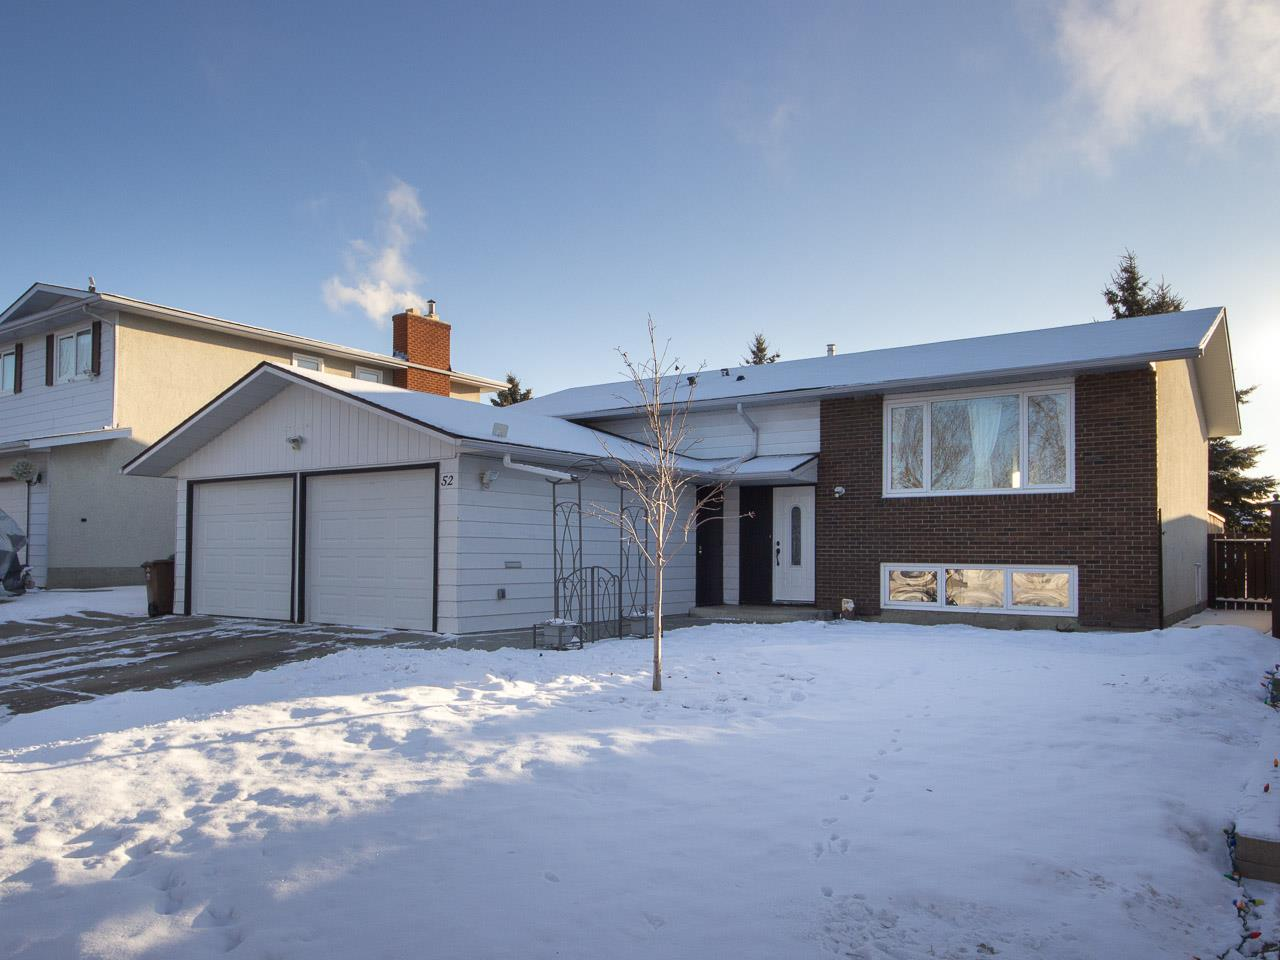 Main Photo: 52 ALPINE Boulevard: St. Albert House for sale : MLS® # E4091763